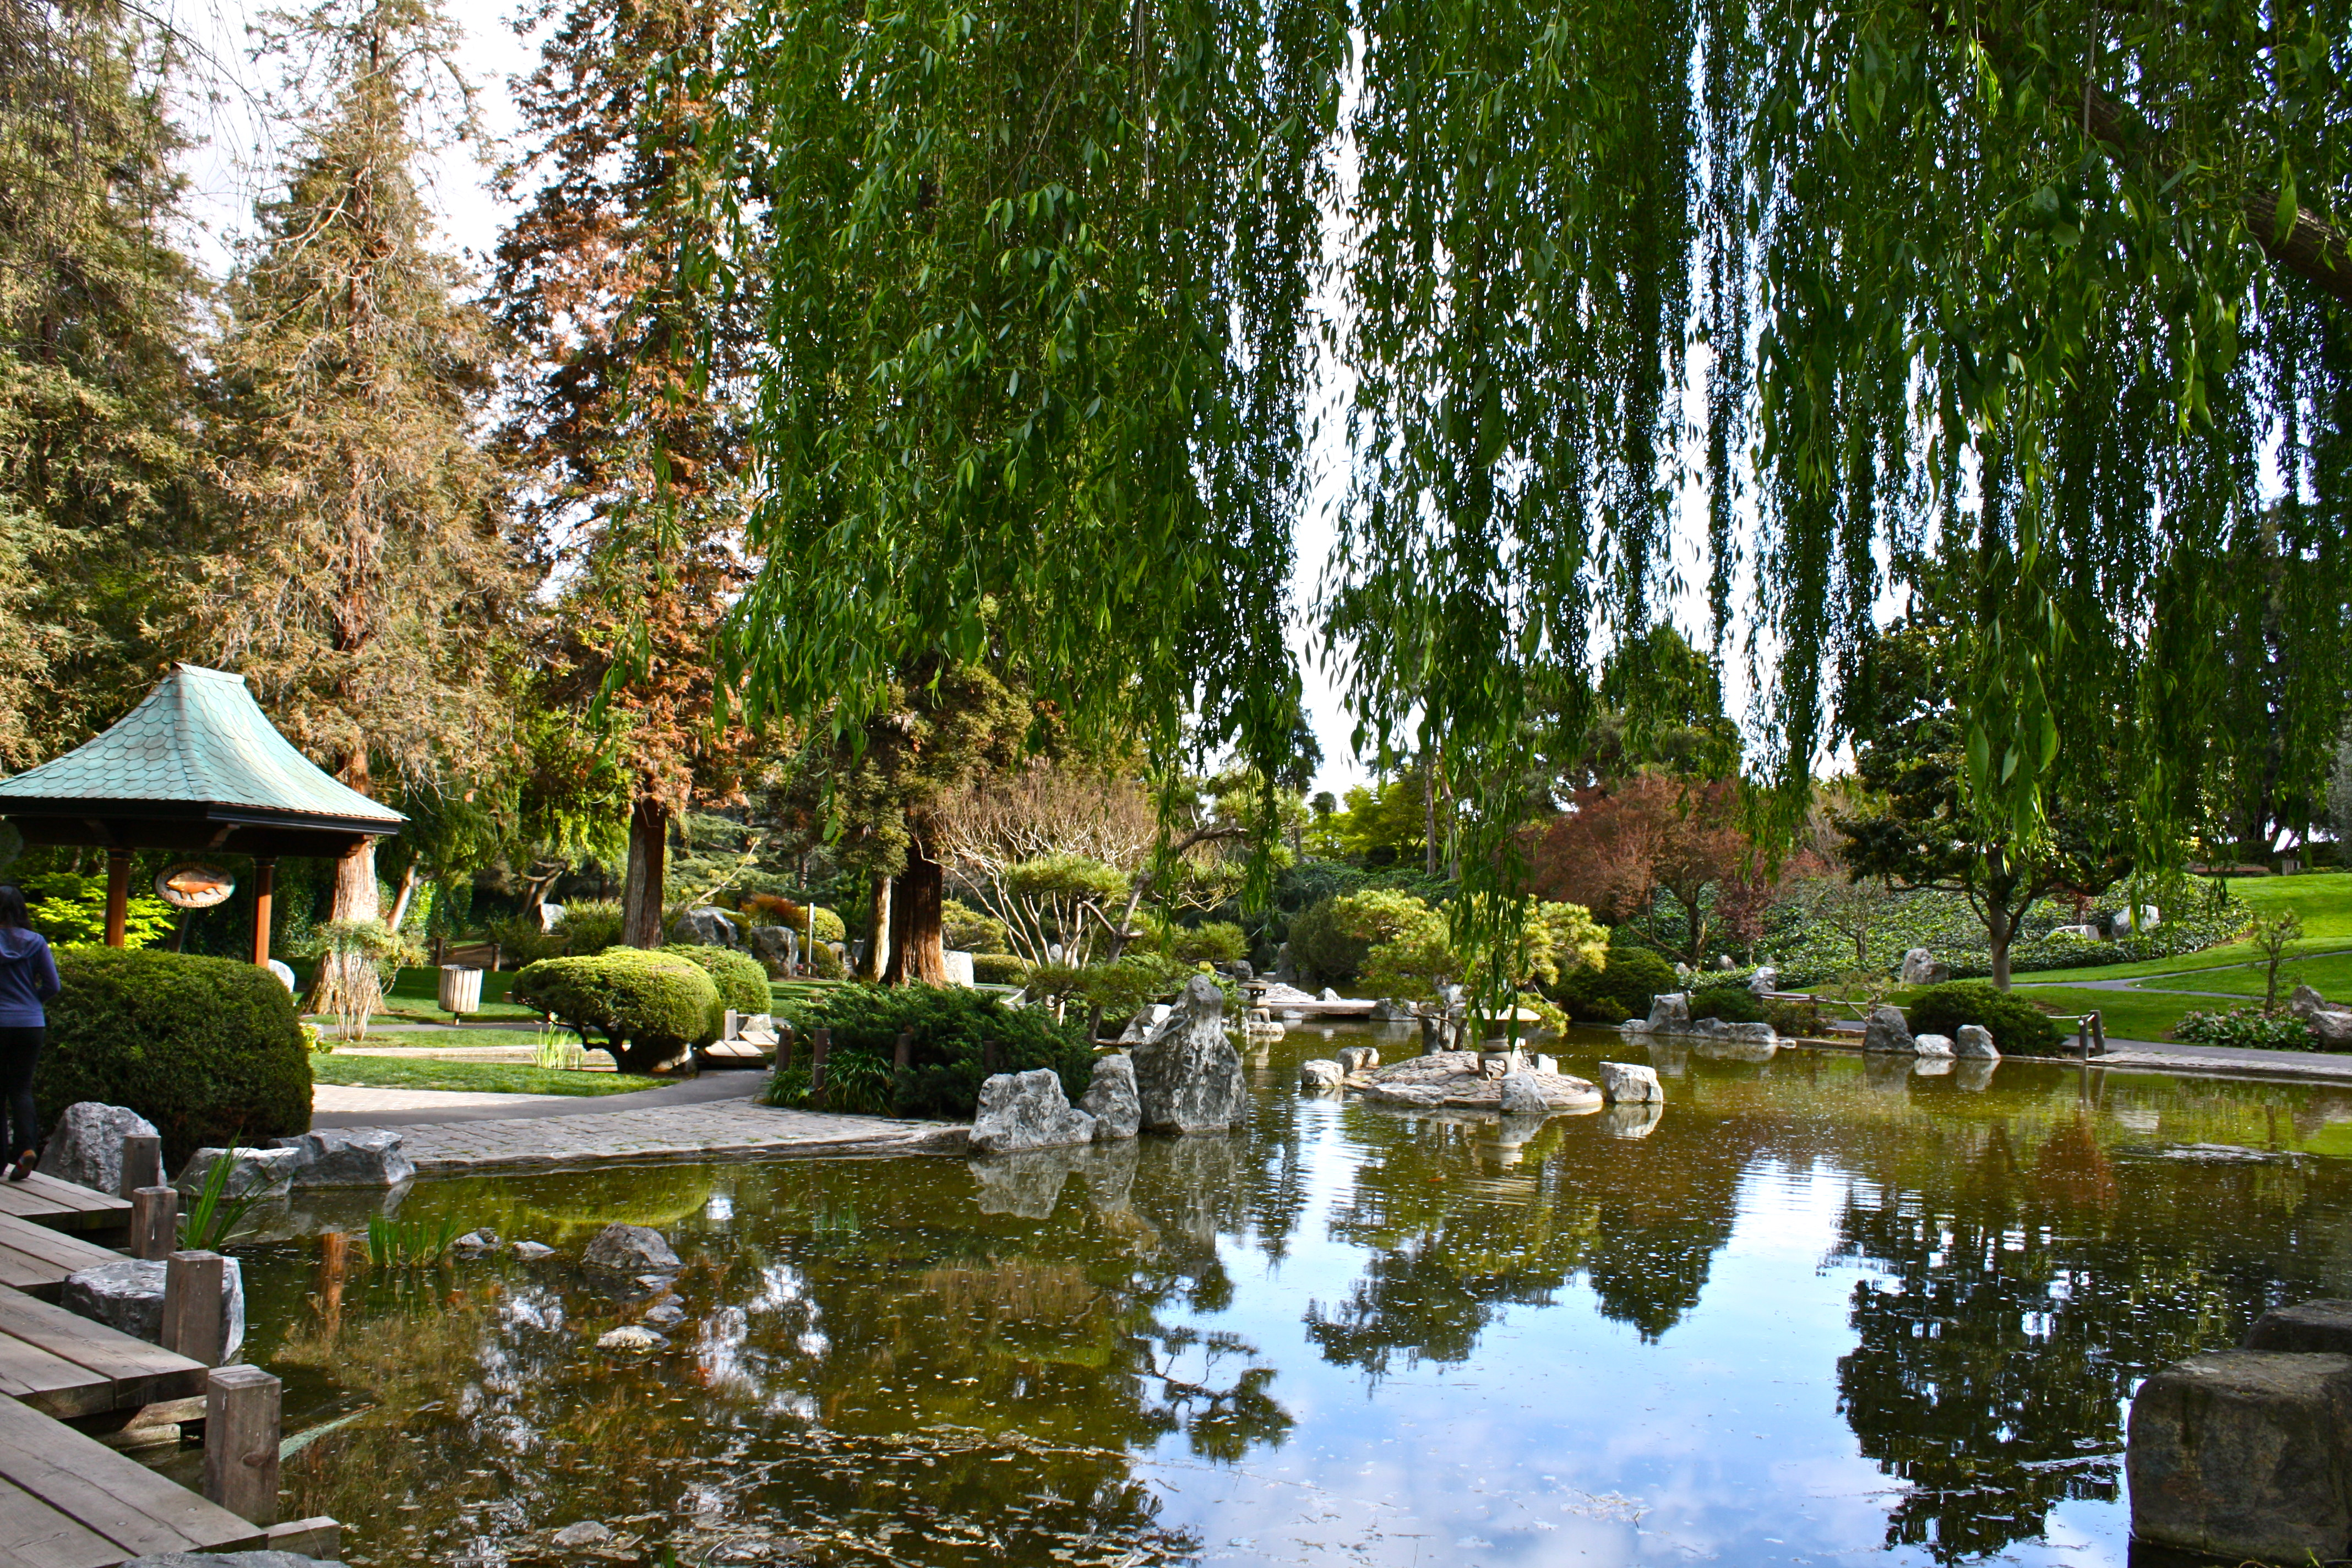 The lower pond in the Japanese Friendship Garden in Kelley Park (image from Expedia)